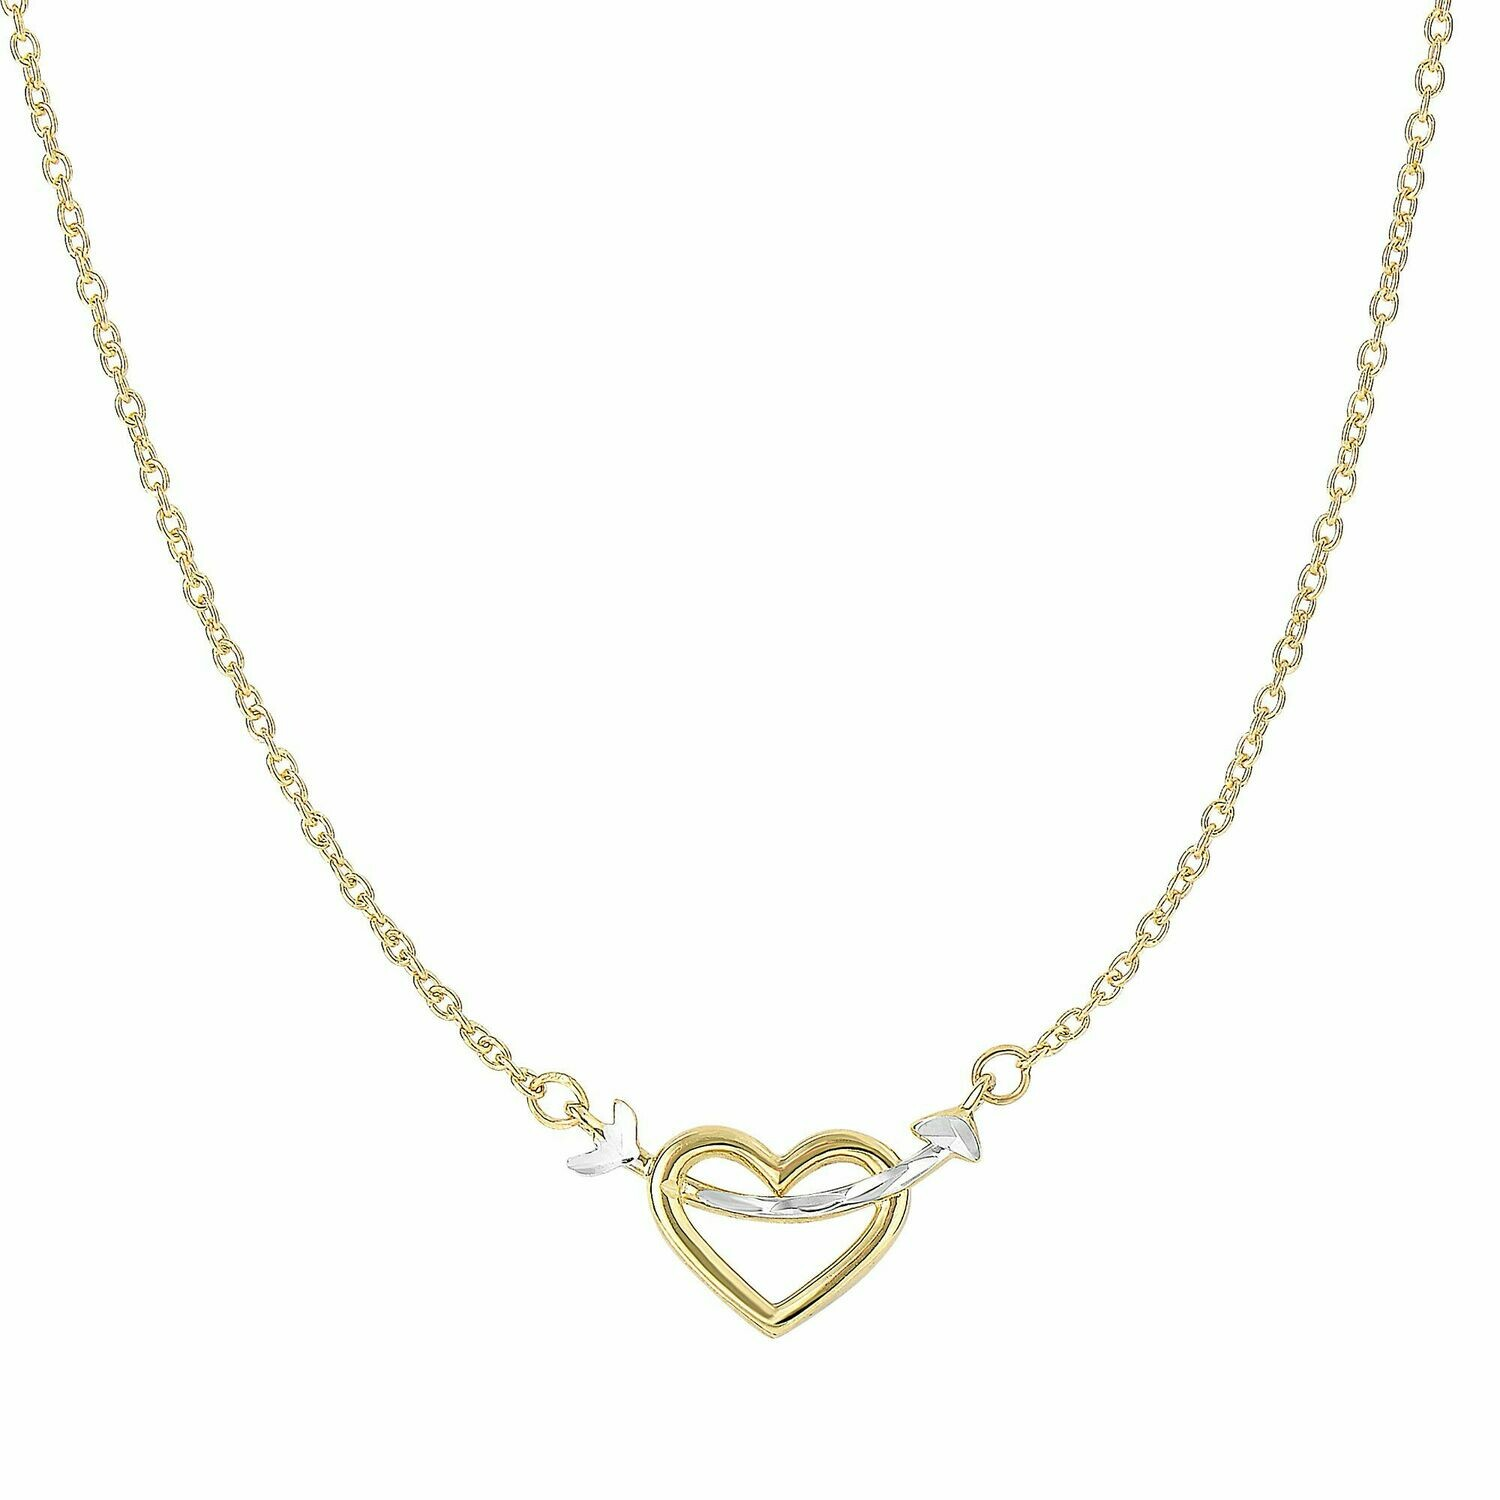 14K Gold Heart & Arrow Necklace